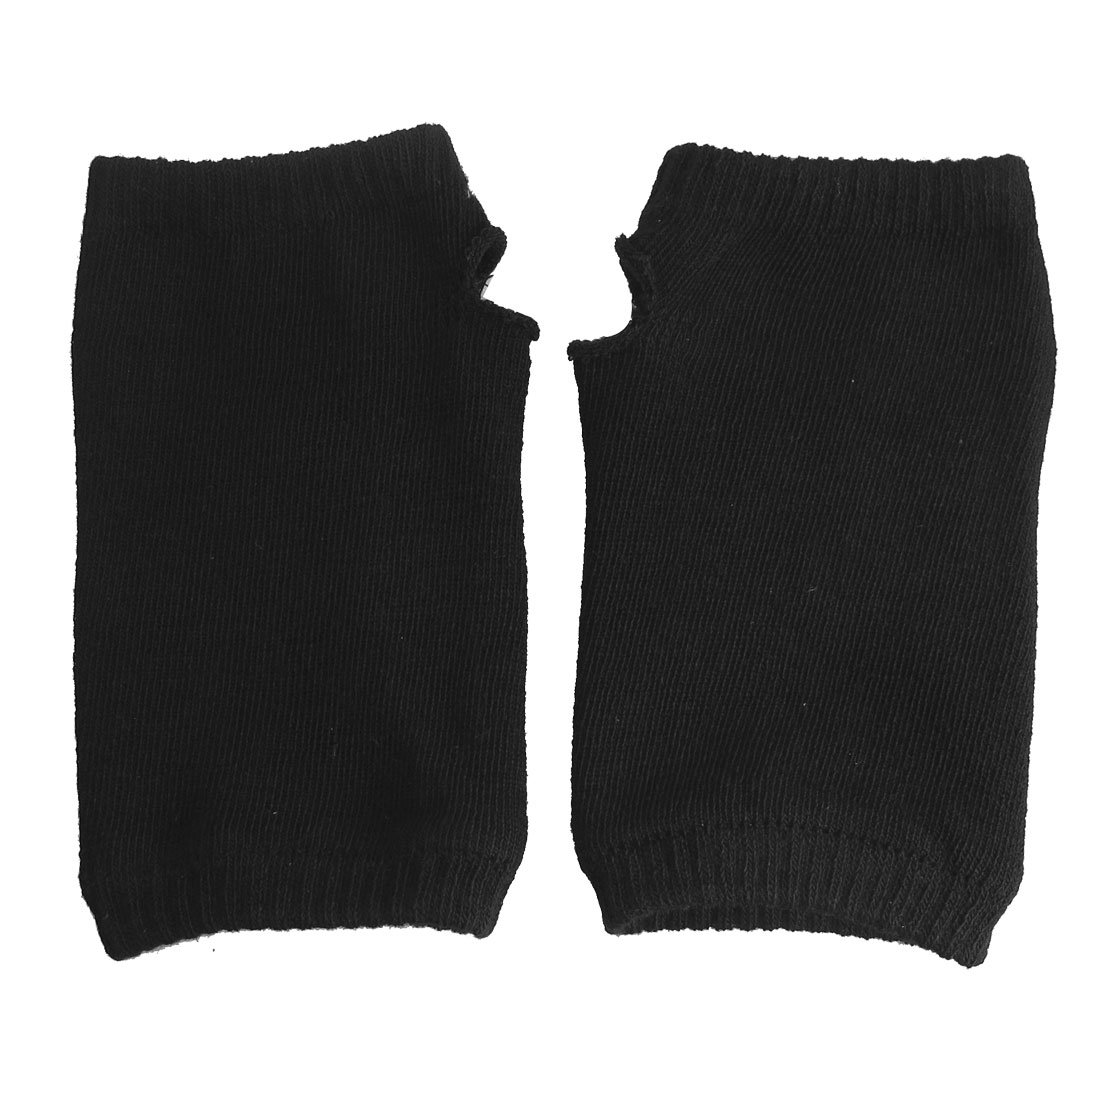 Black Knitted Elastic Fingerless Winter Gloves for Women